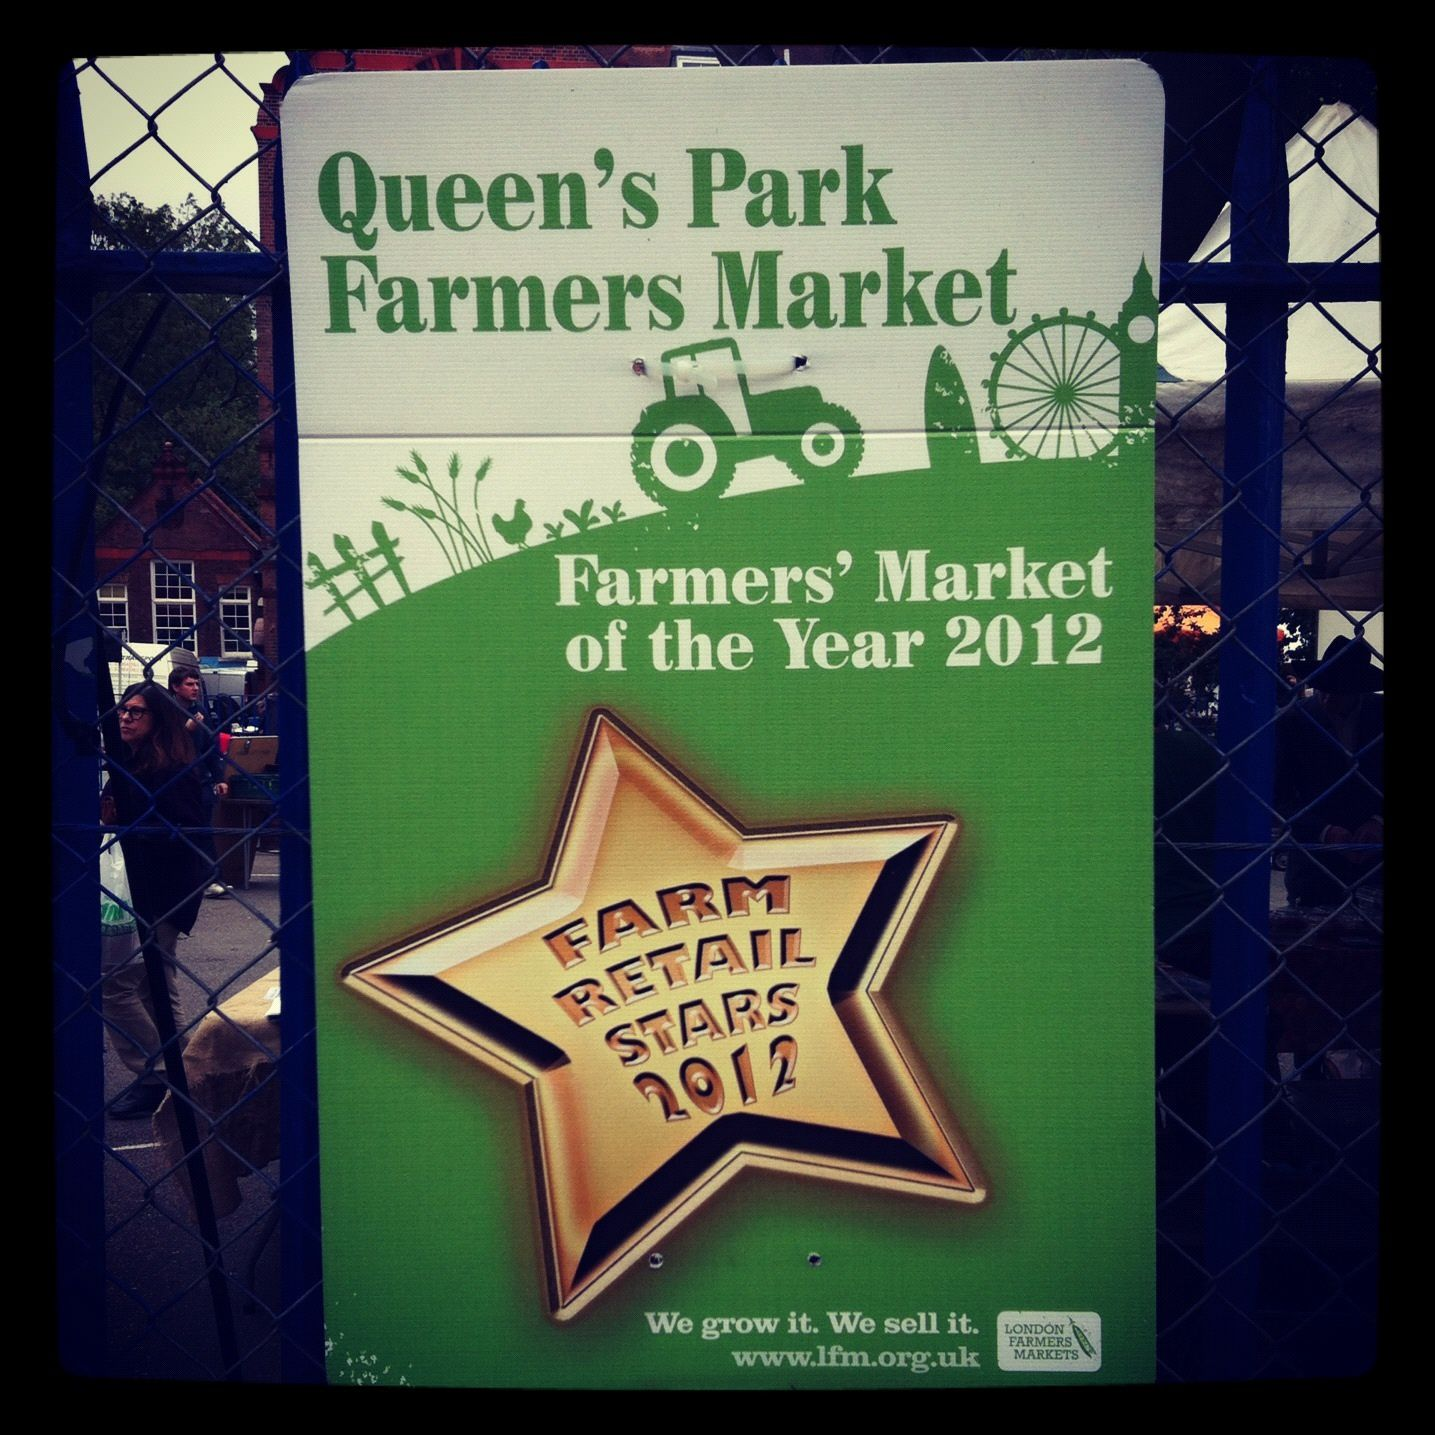 Queens Park Farmers' Market - Every Sunday 10am-2pm